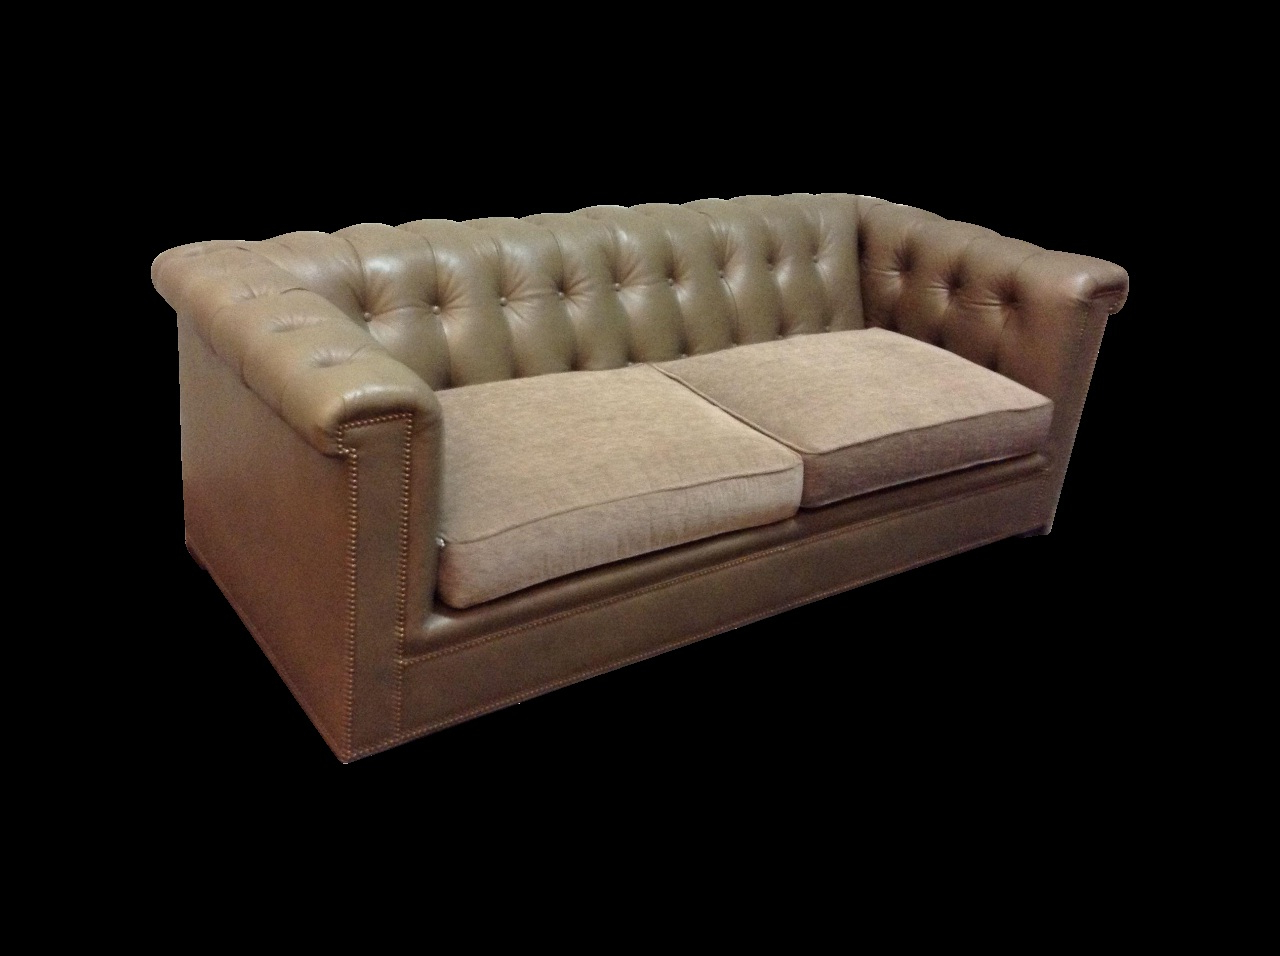 Most Recently Released Walter Leather Sofa Fresh Hickory Chair Kent Tufted Leather Sofa On With Walter Leather Sofa Chairs (View 14 of 20)